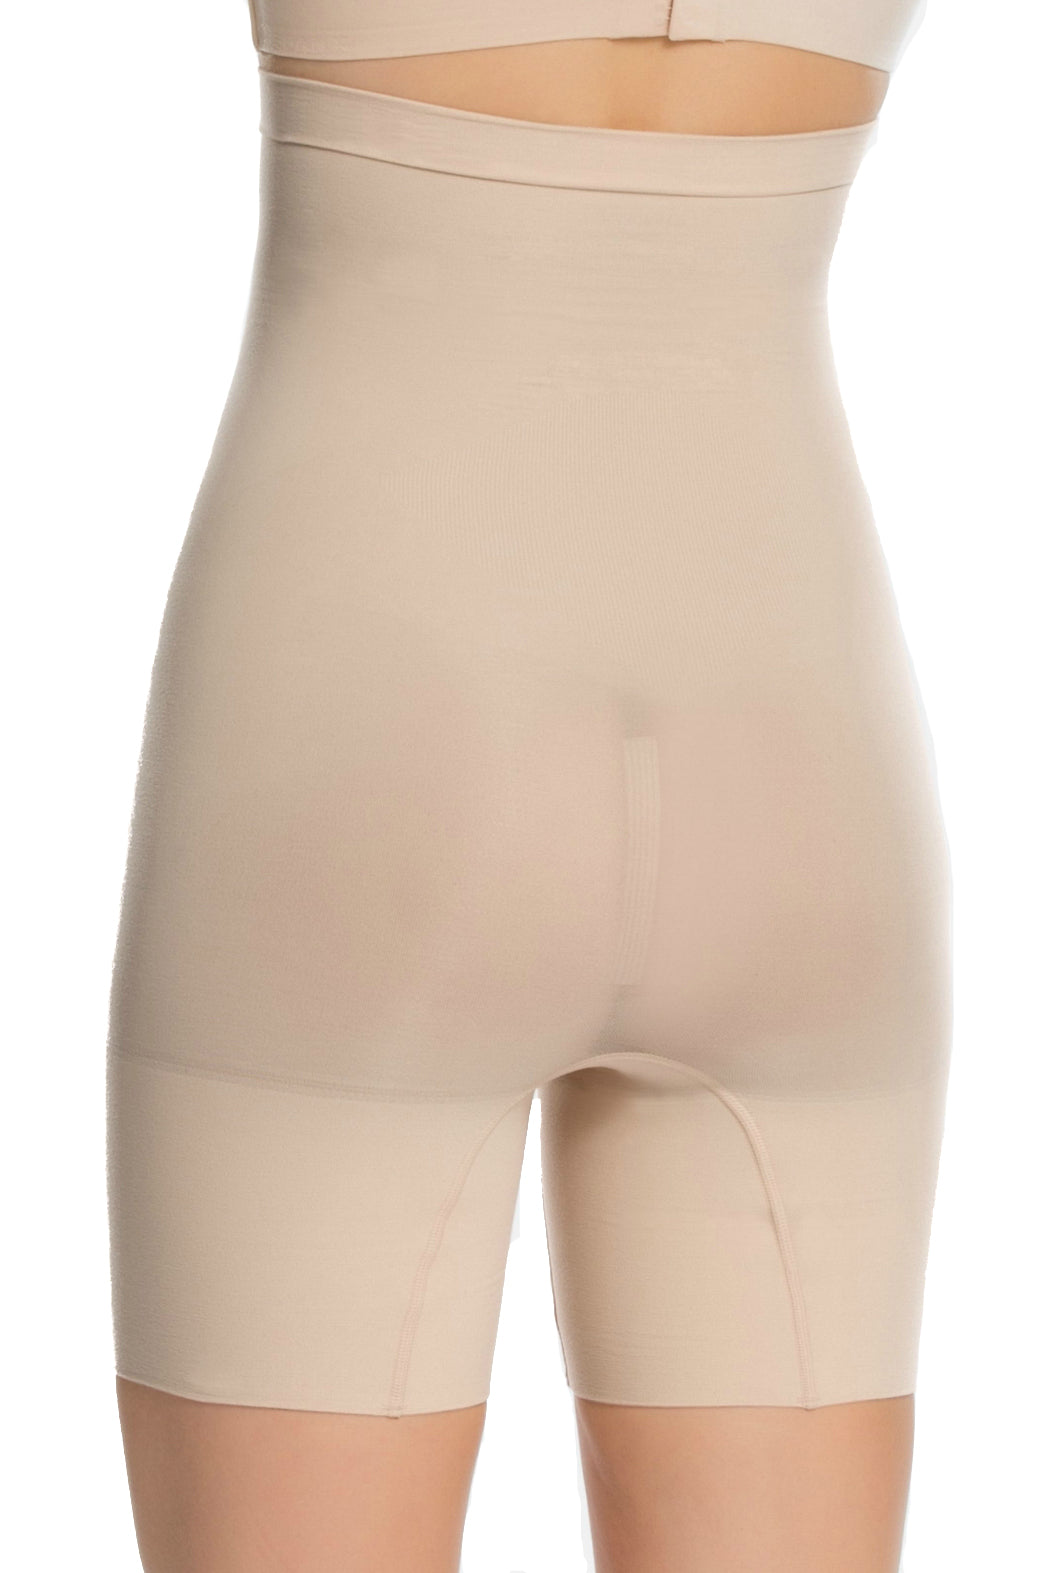 2 Power Series Higher Power Nude Shorts at reddressboutique.com